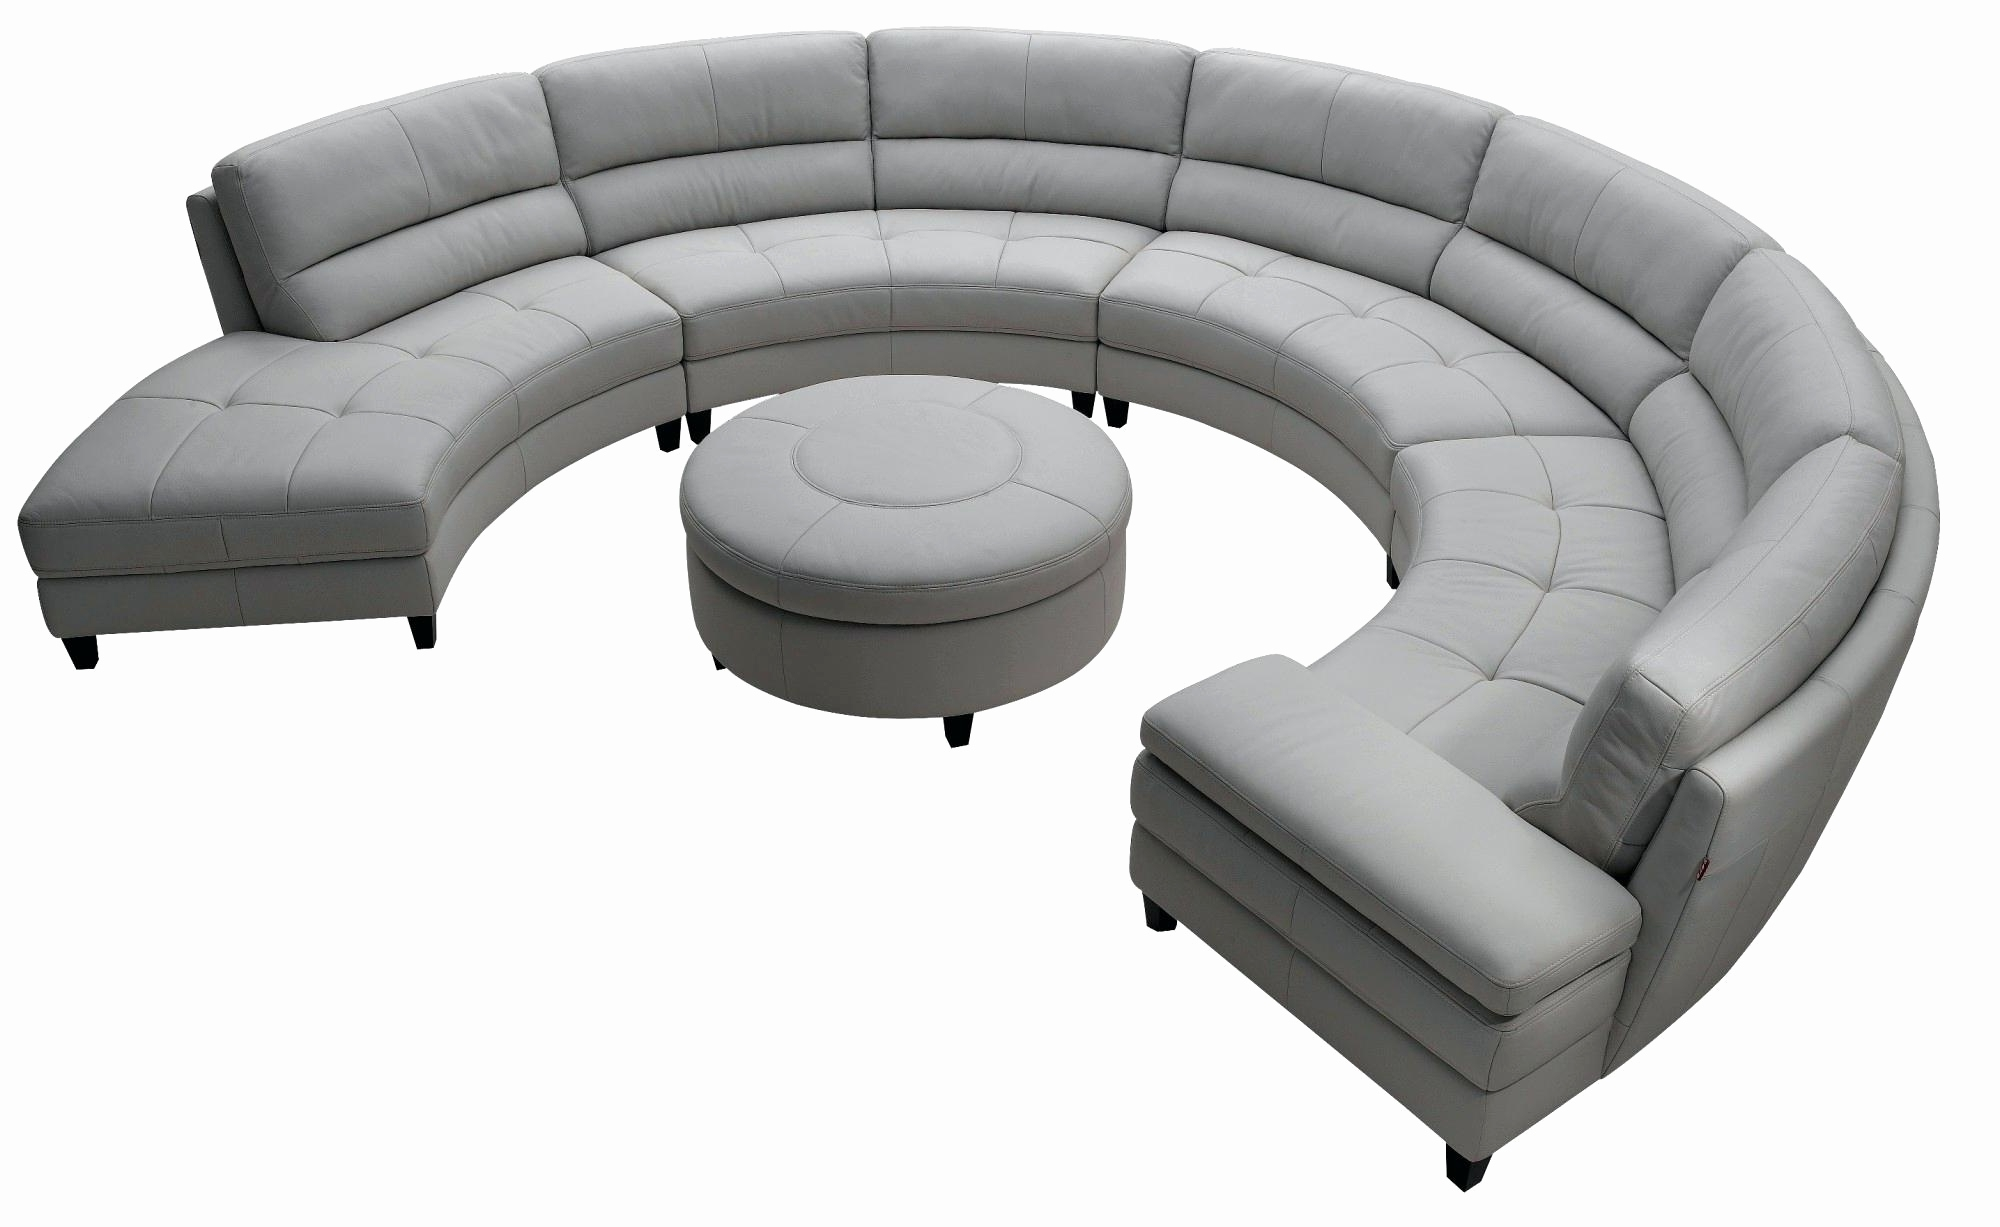 Best Round Couches For Sale 2018 – Couches And Sofas Ideas Regarding Popular Round Sofas (View 2 of 20)